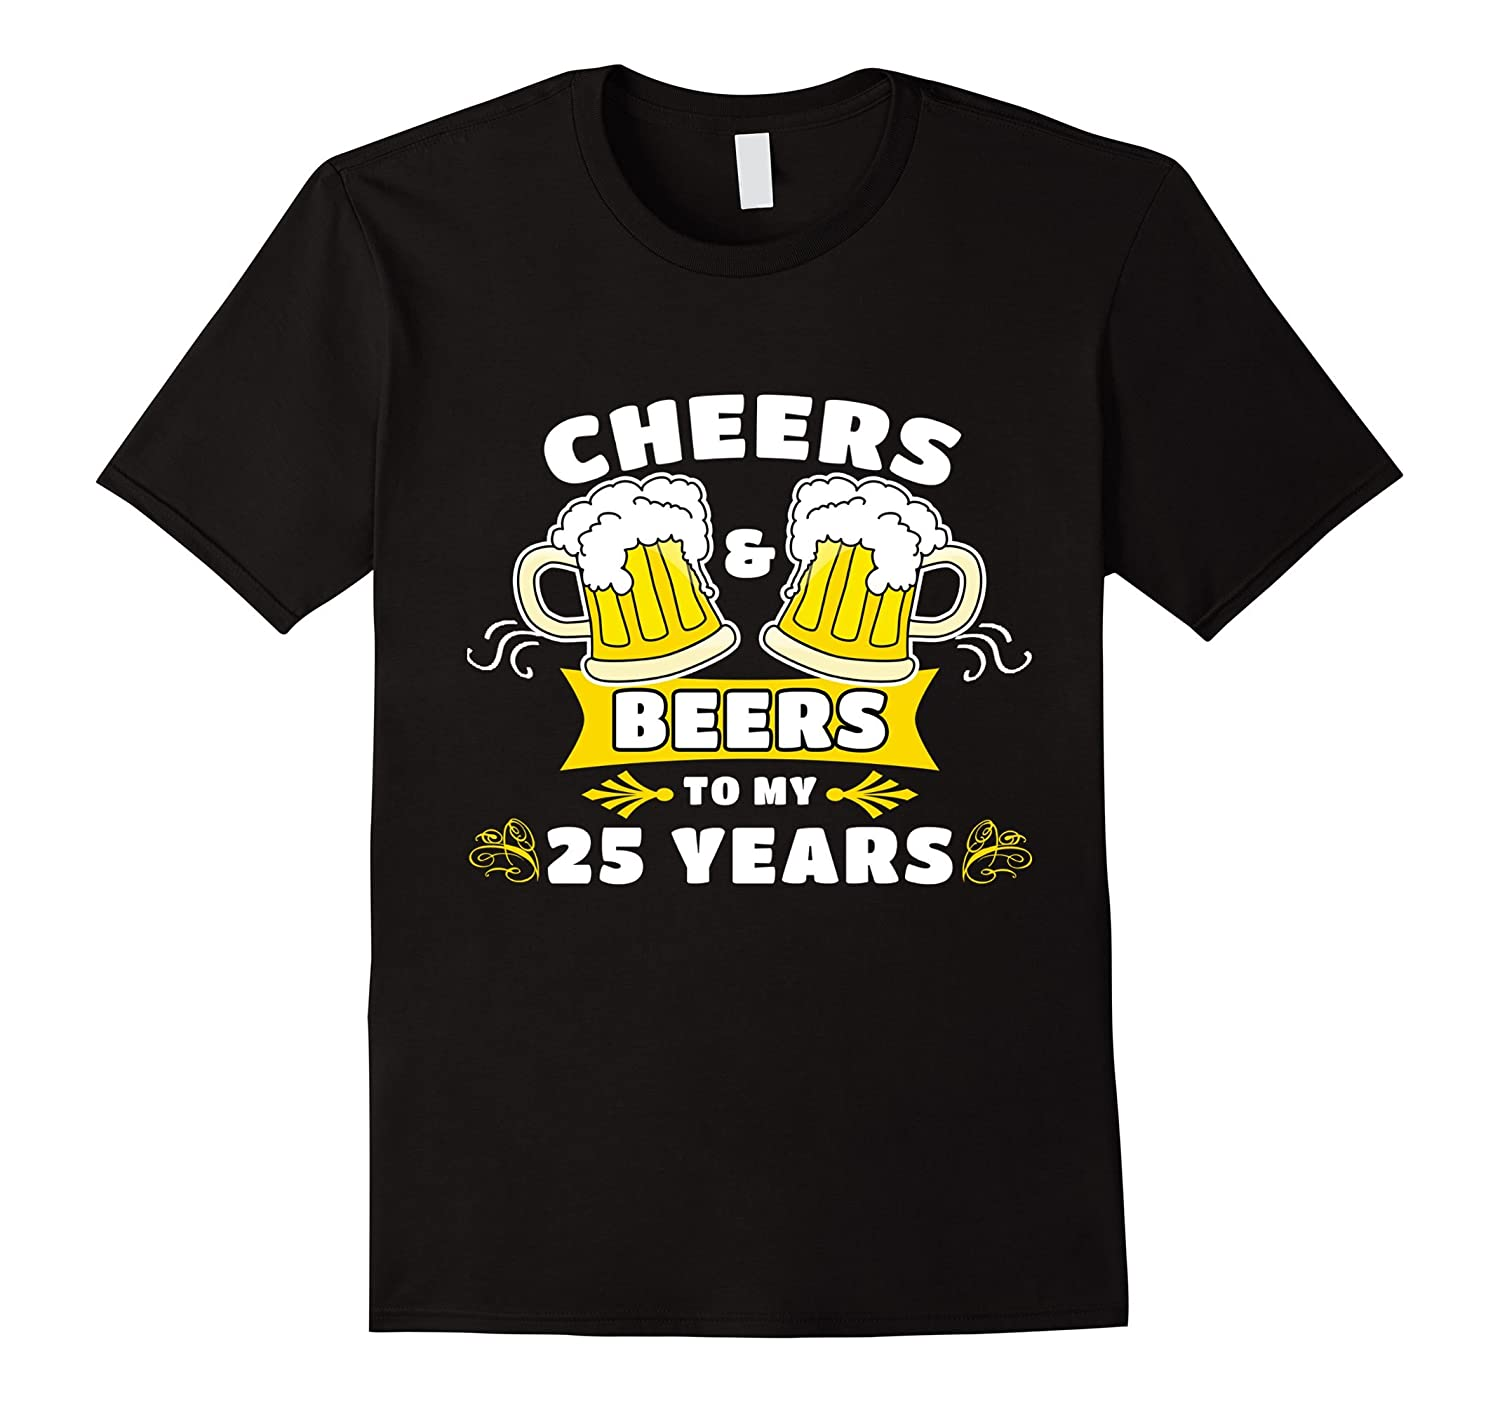 Cheers And Beers To My 25 Years T-Shirt 25th Birthday Gift-Art